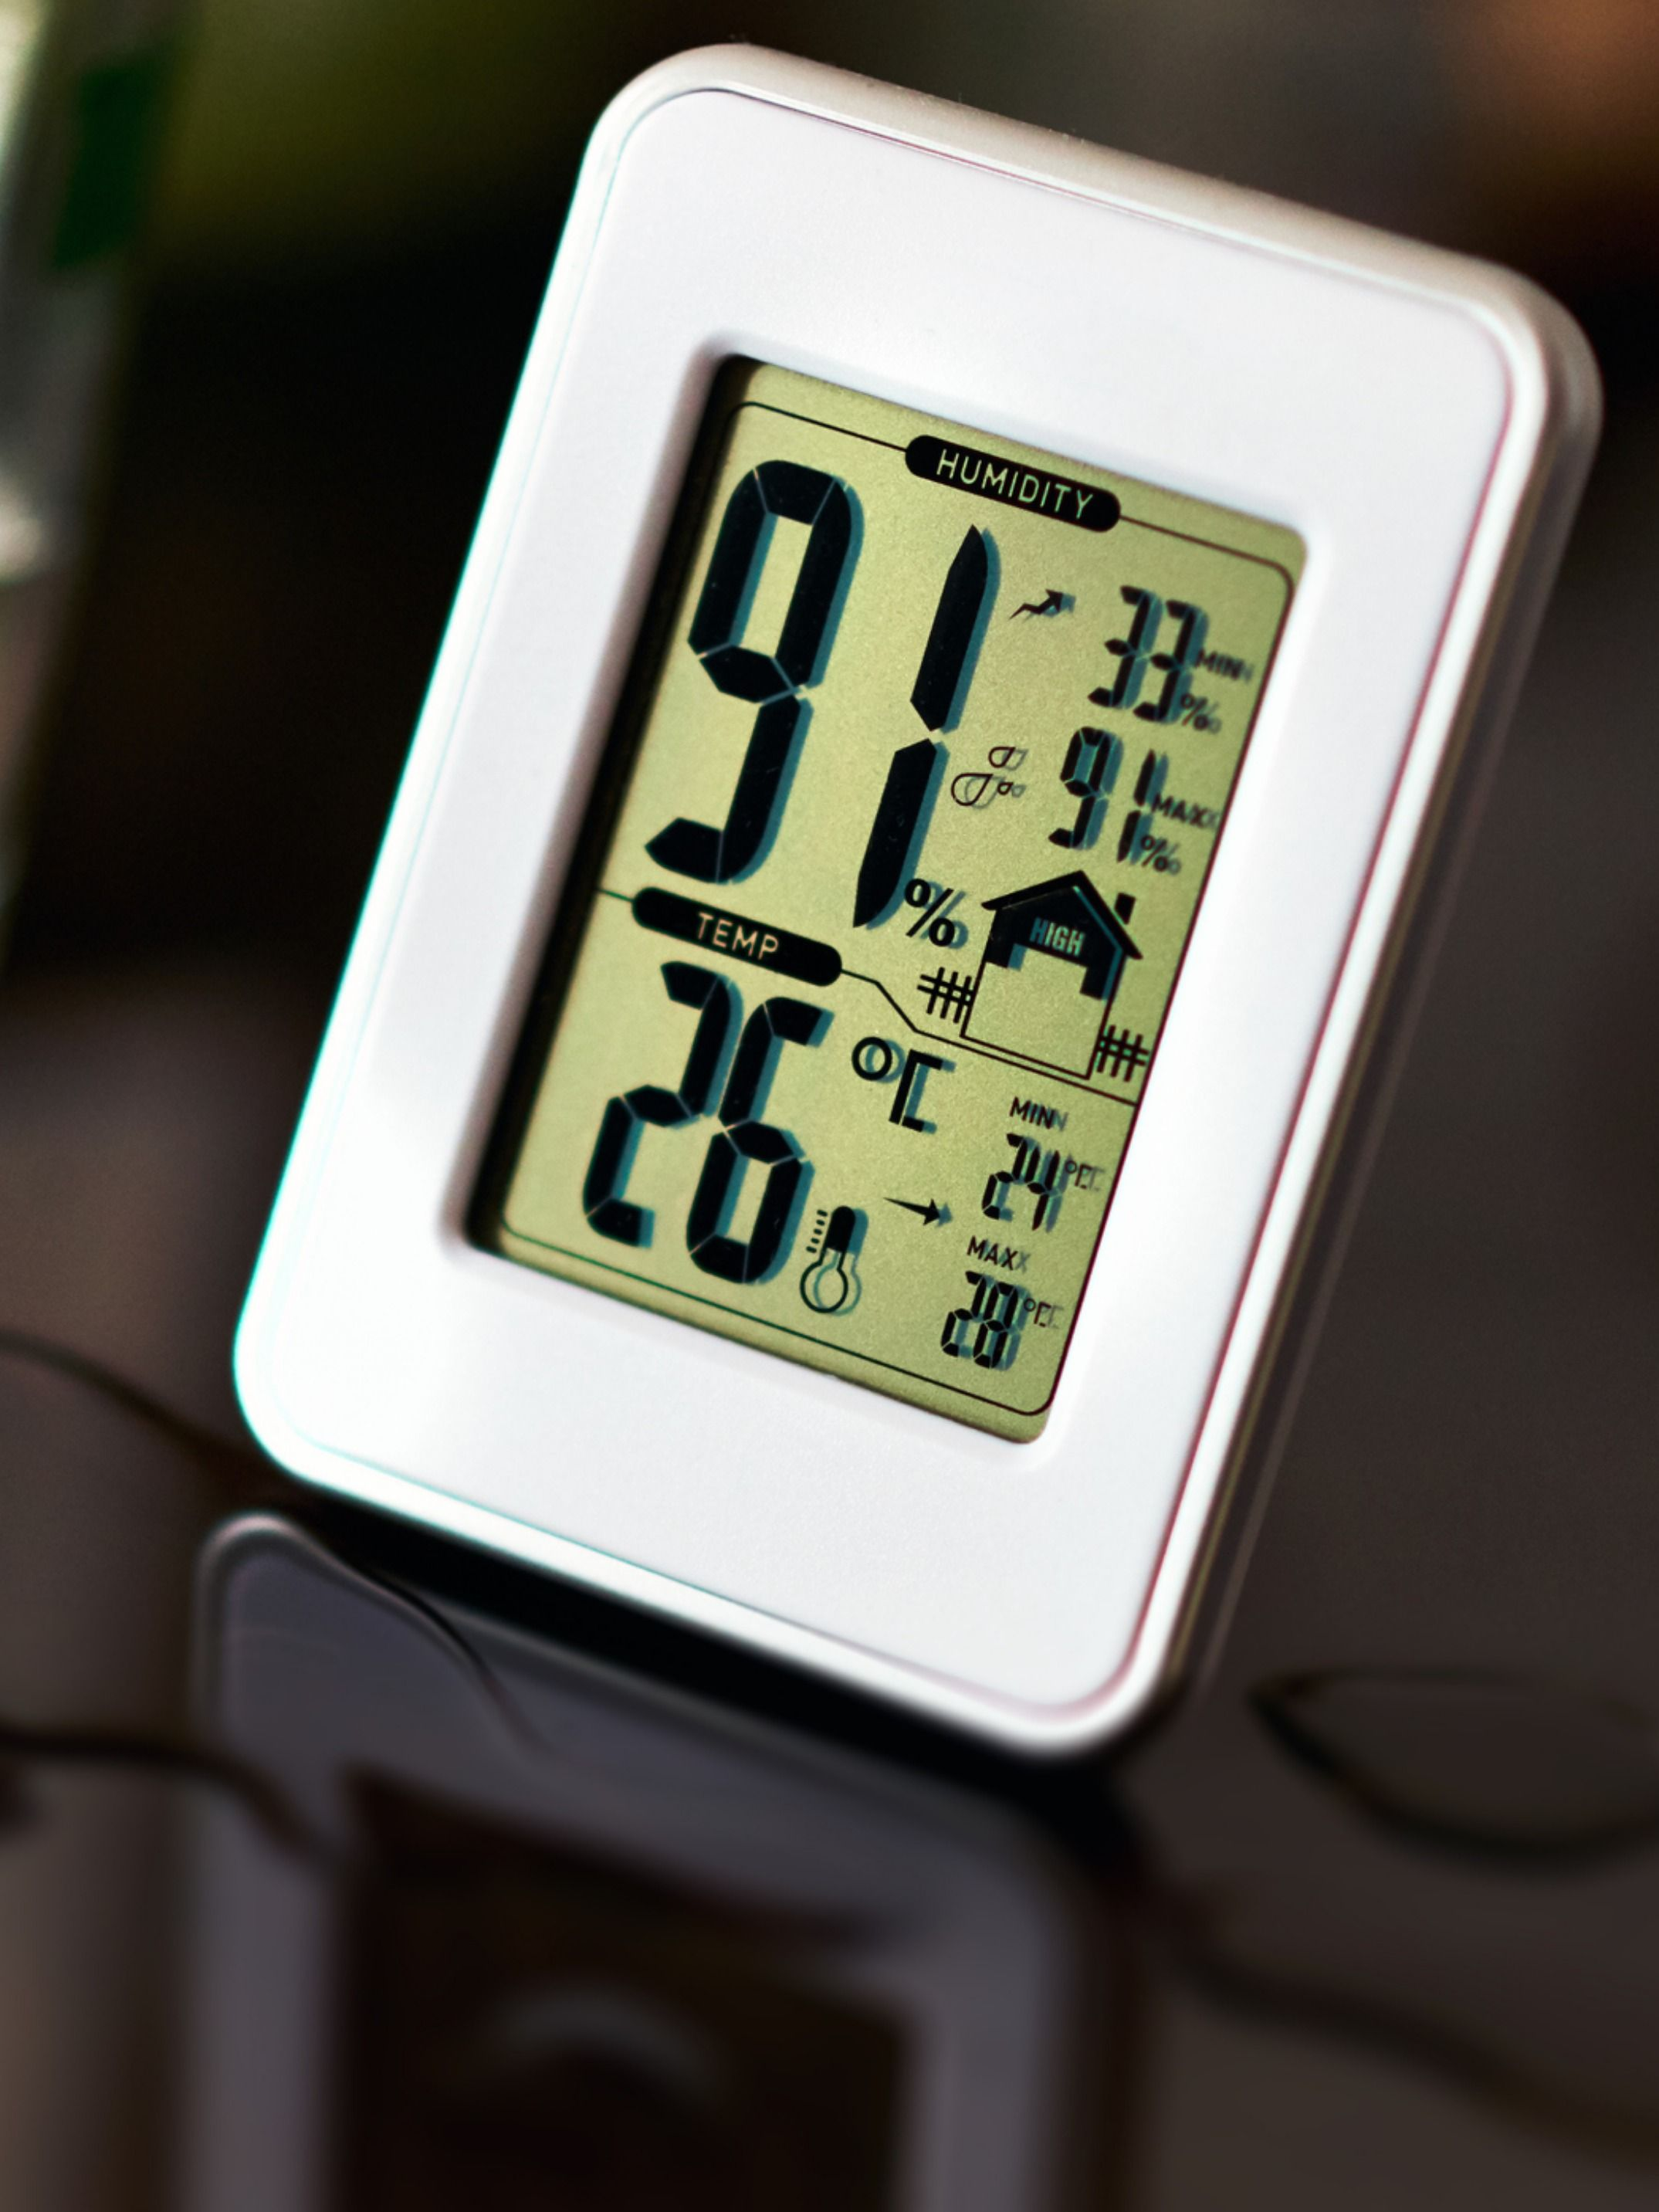 Why You Should Monitor the Humidity Levels In Your Home